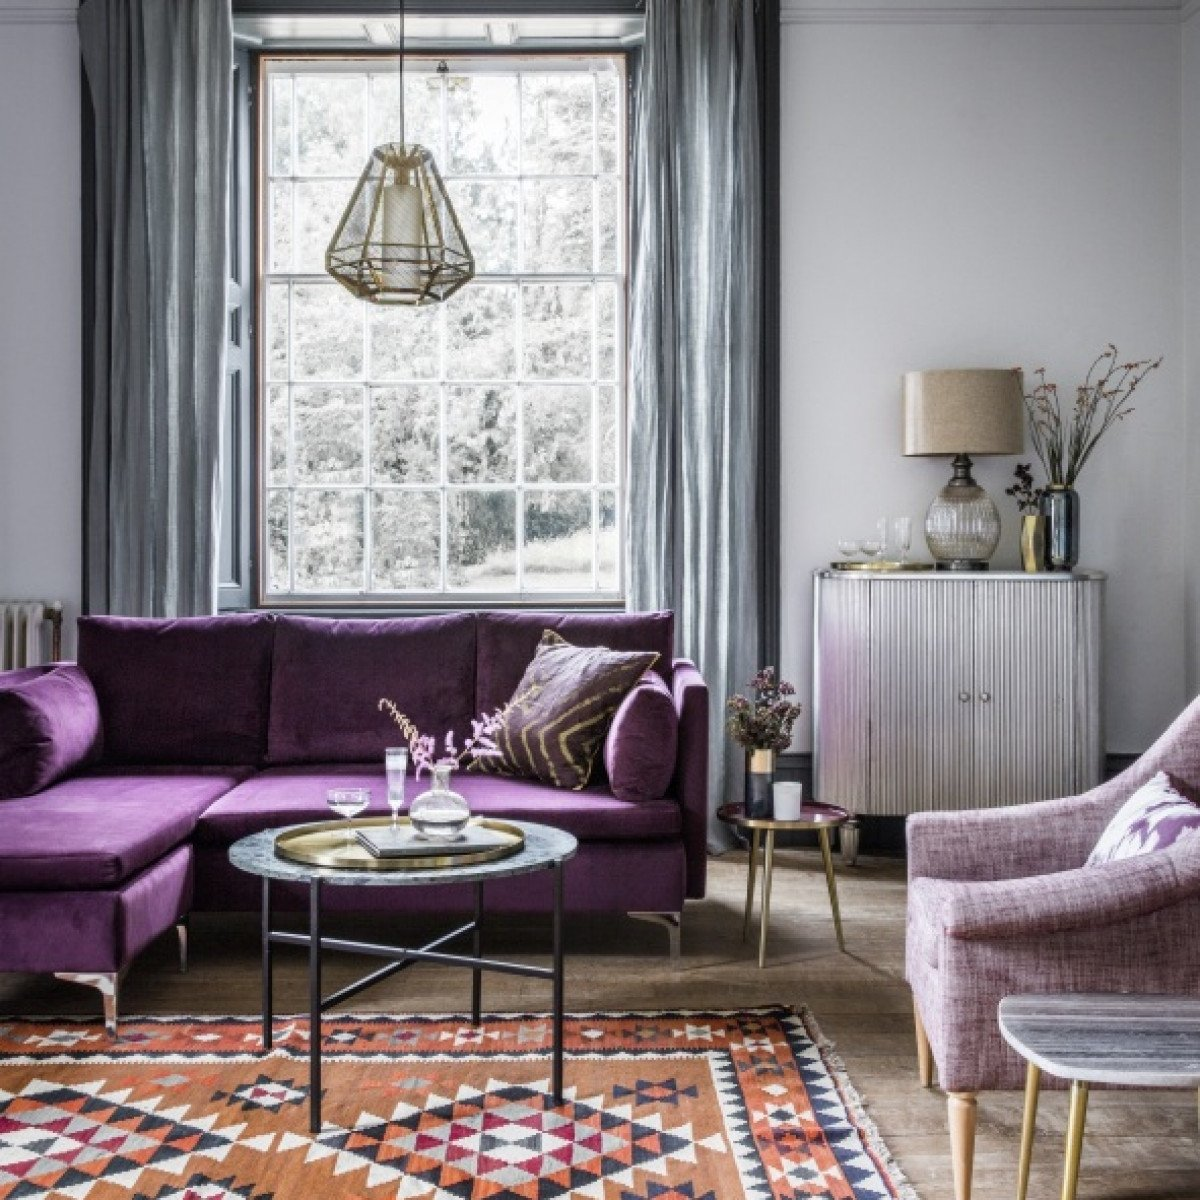 Purple Decor for Living Room Room Reveal Purple and Grey Living Room – sophie Robinson